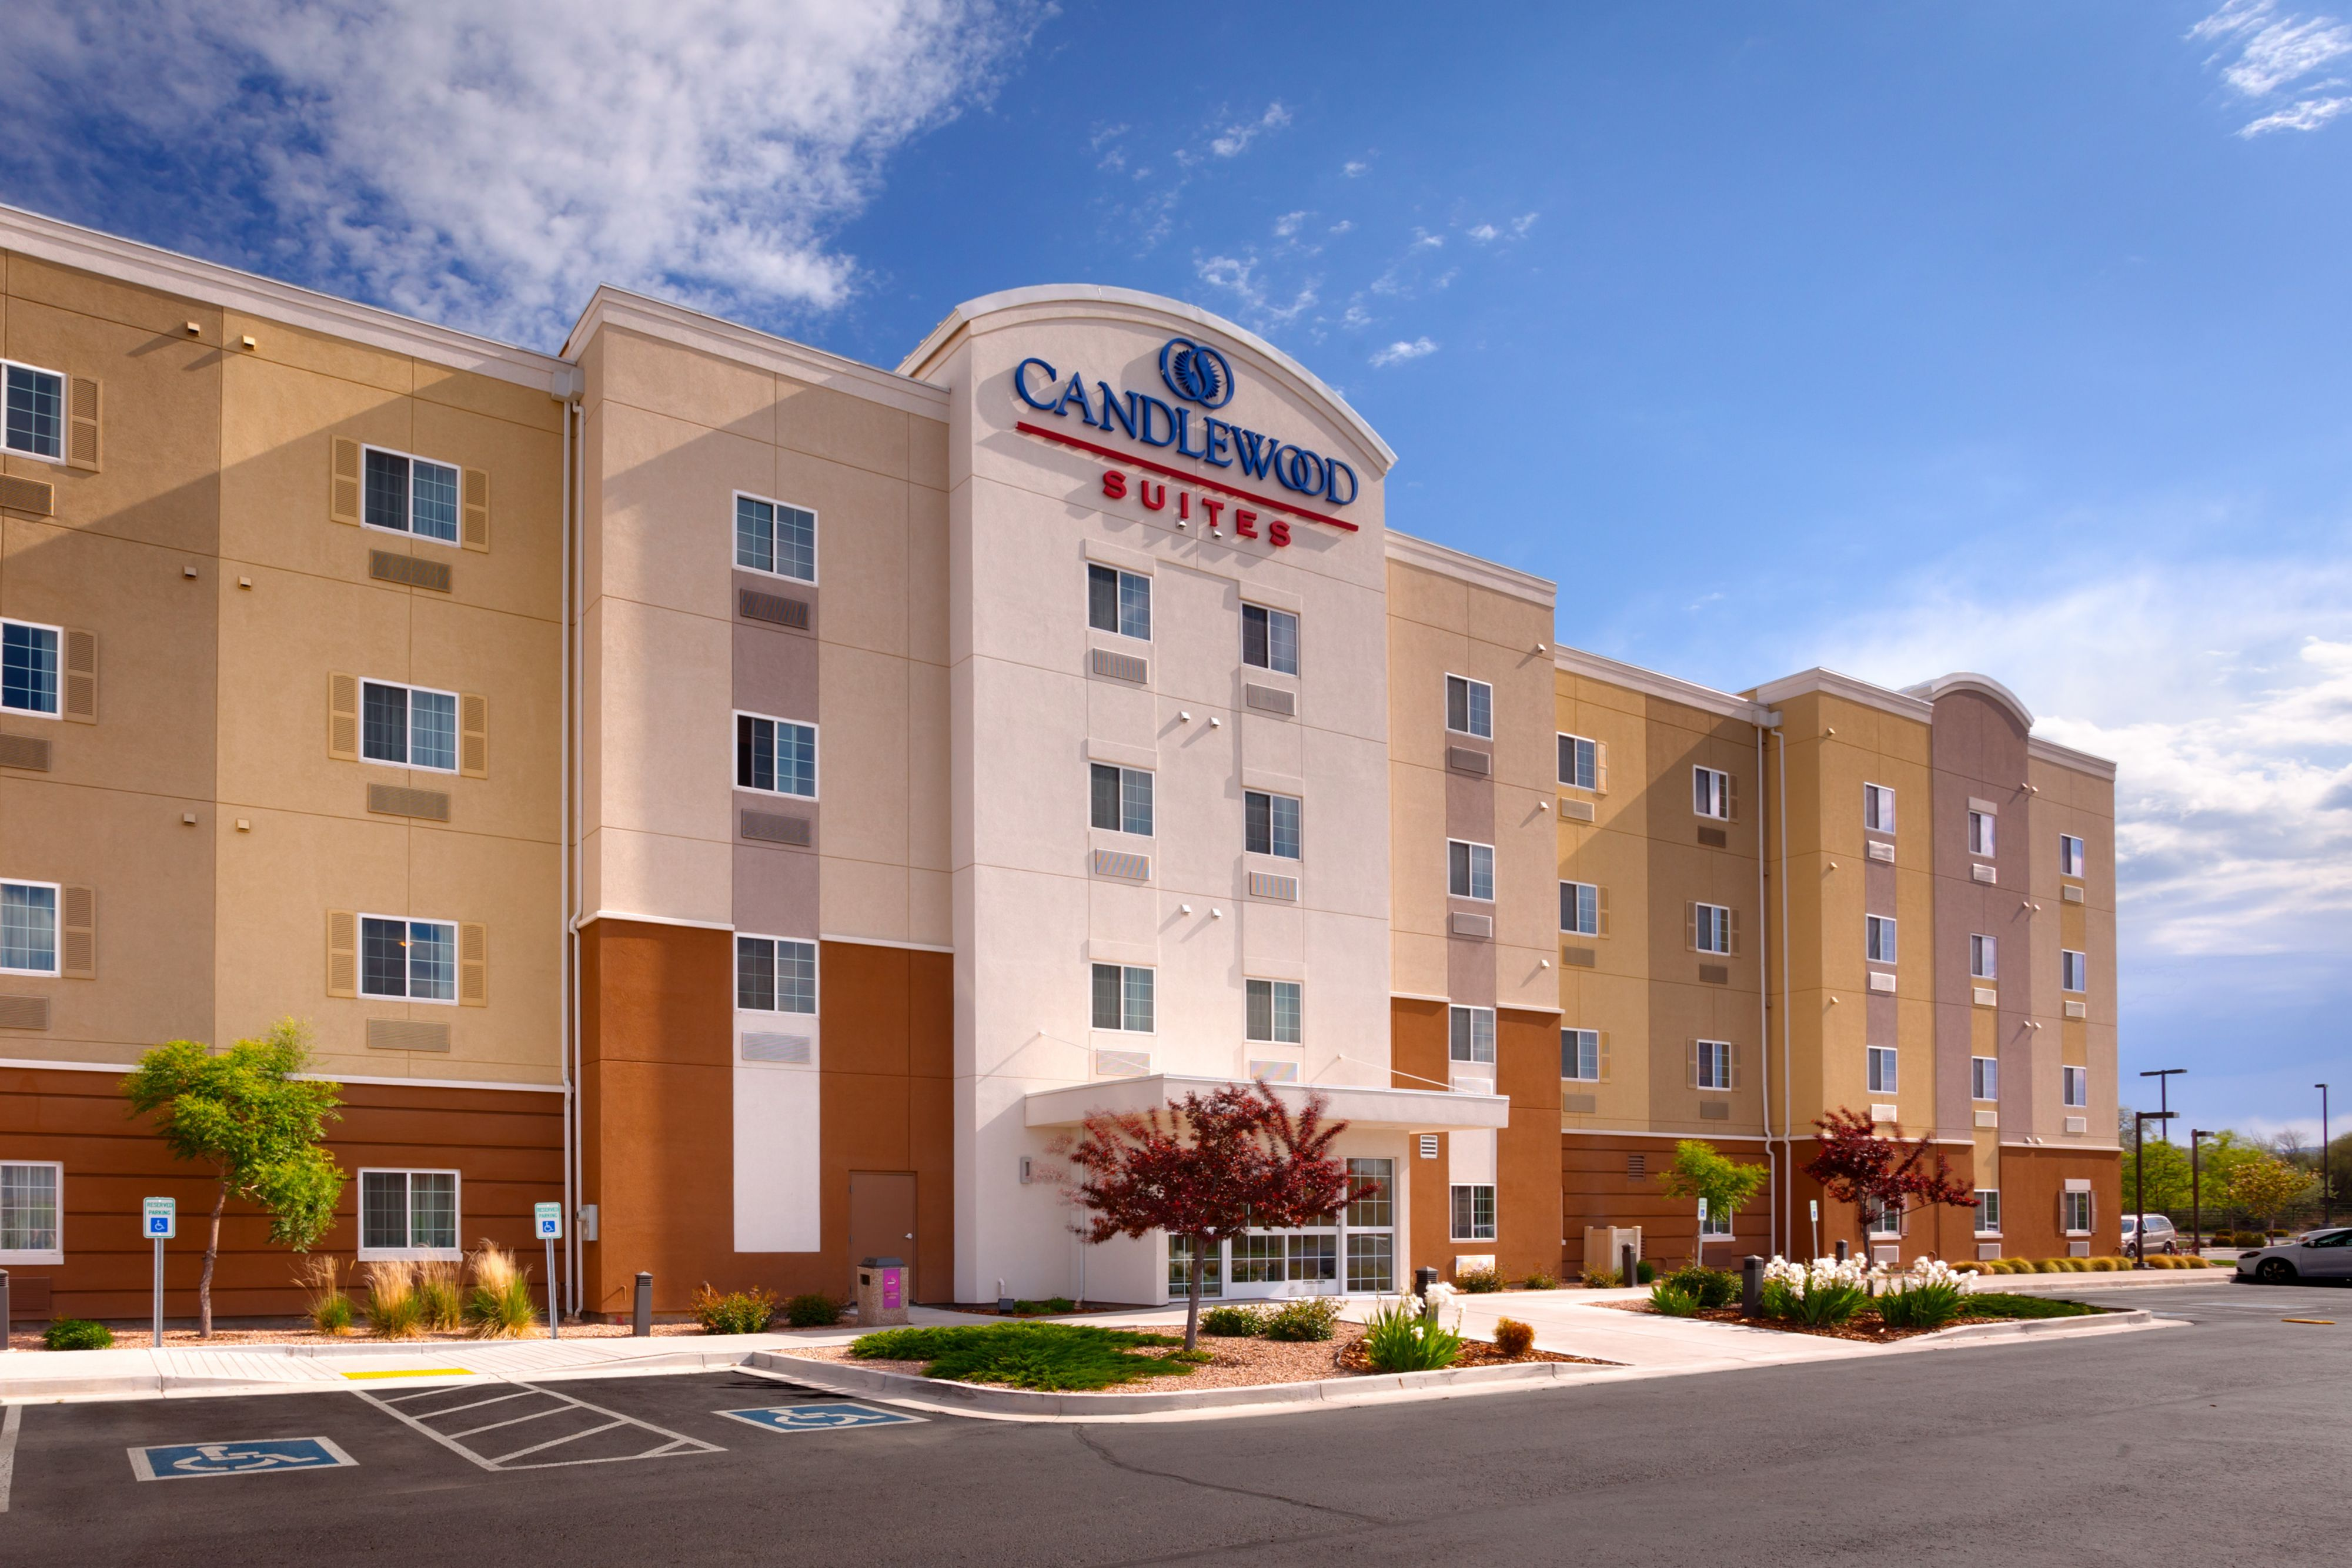 Candlewood Suites Garden Grove Anaheim Area Coupons Near Me In Garden Grove 8coupons